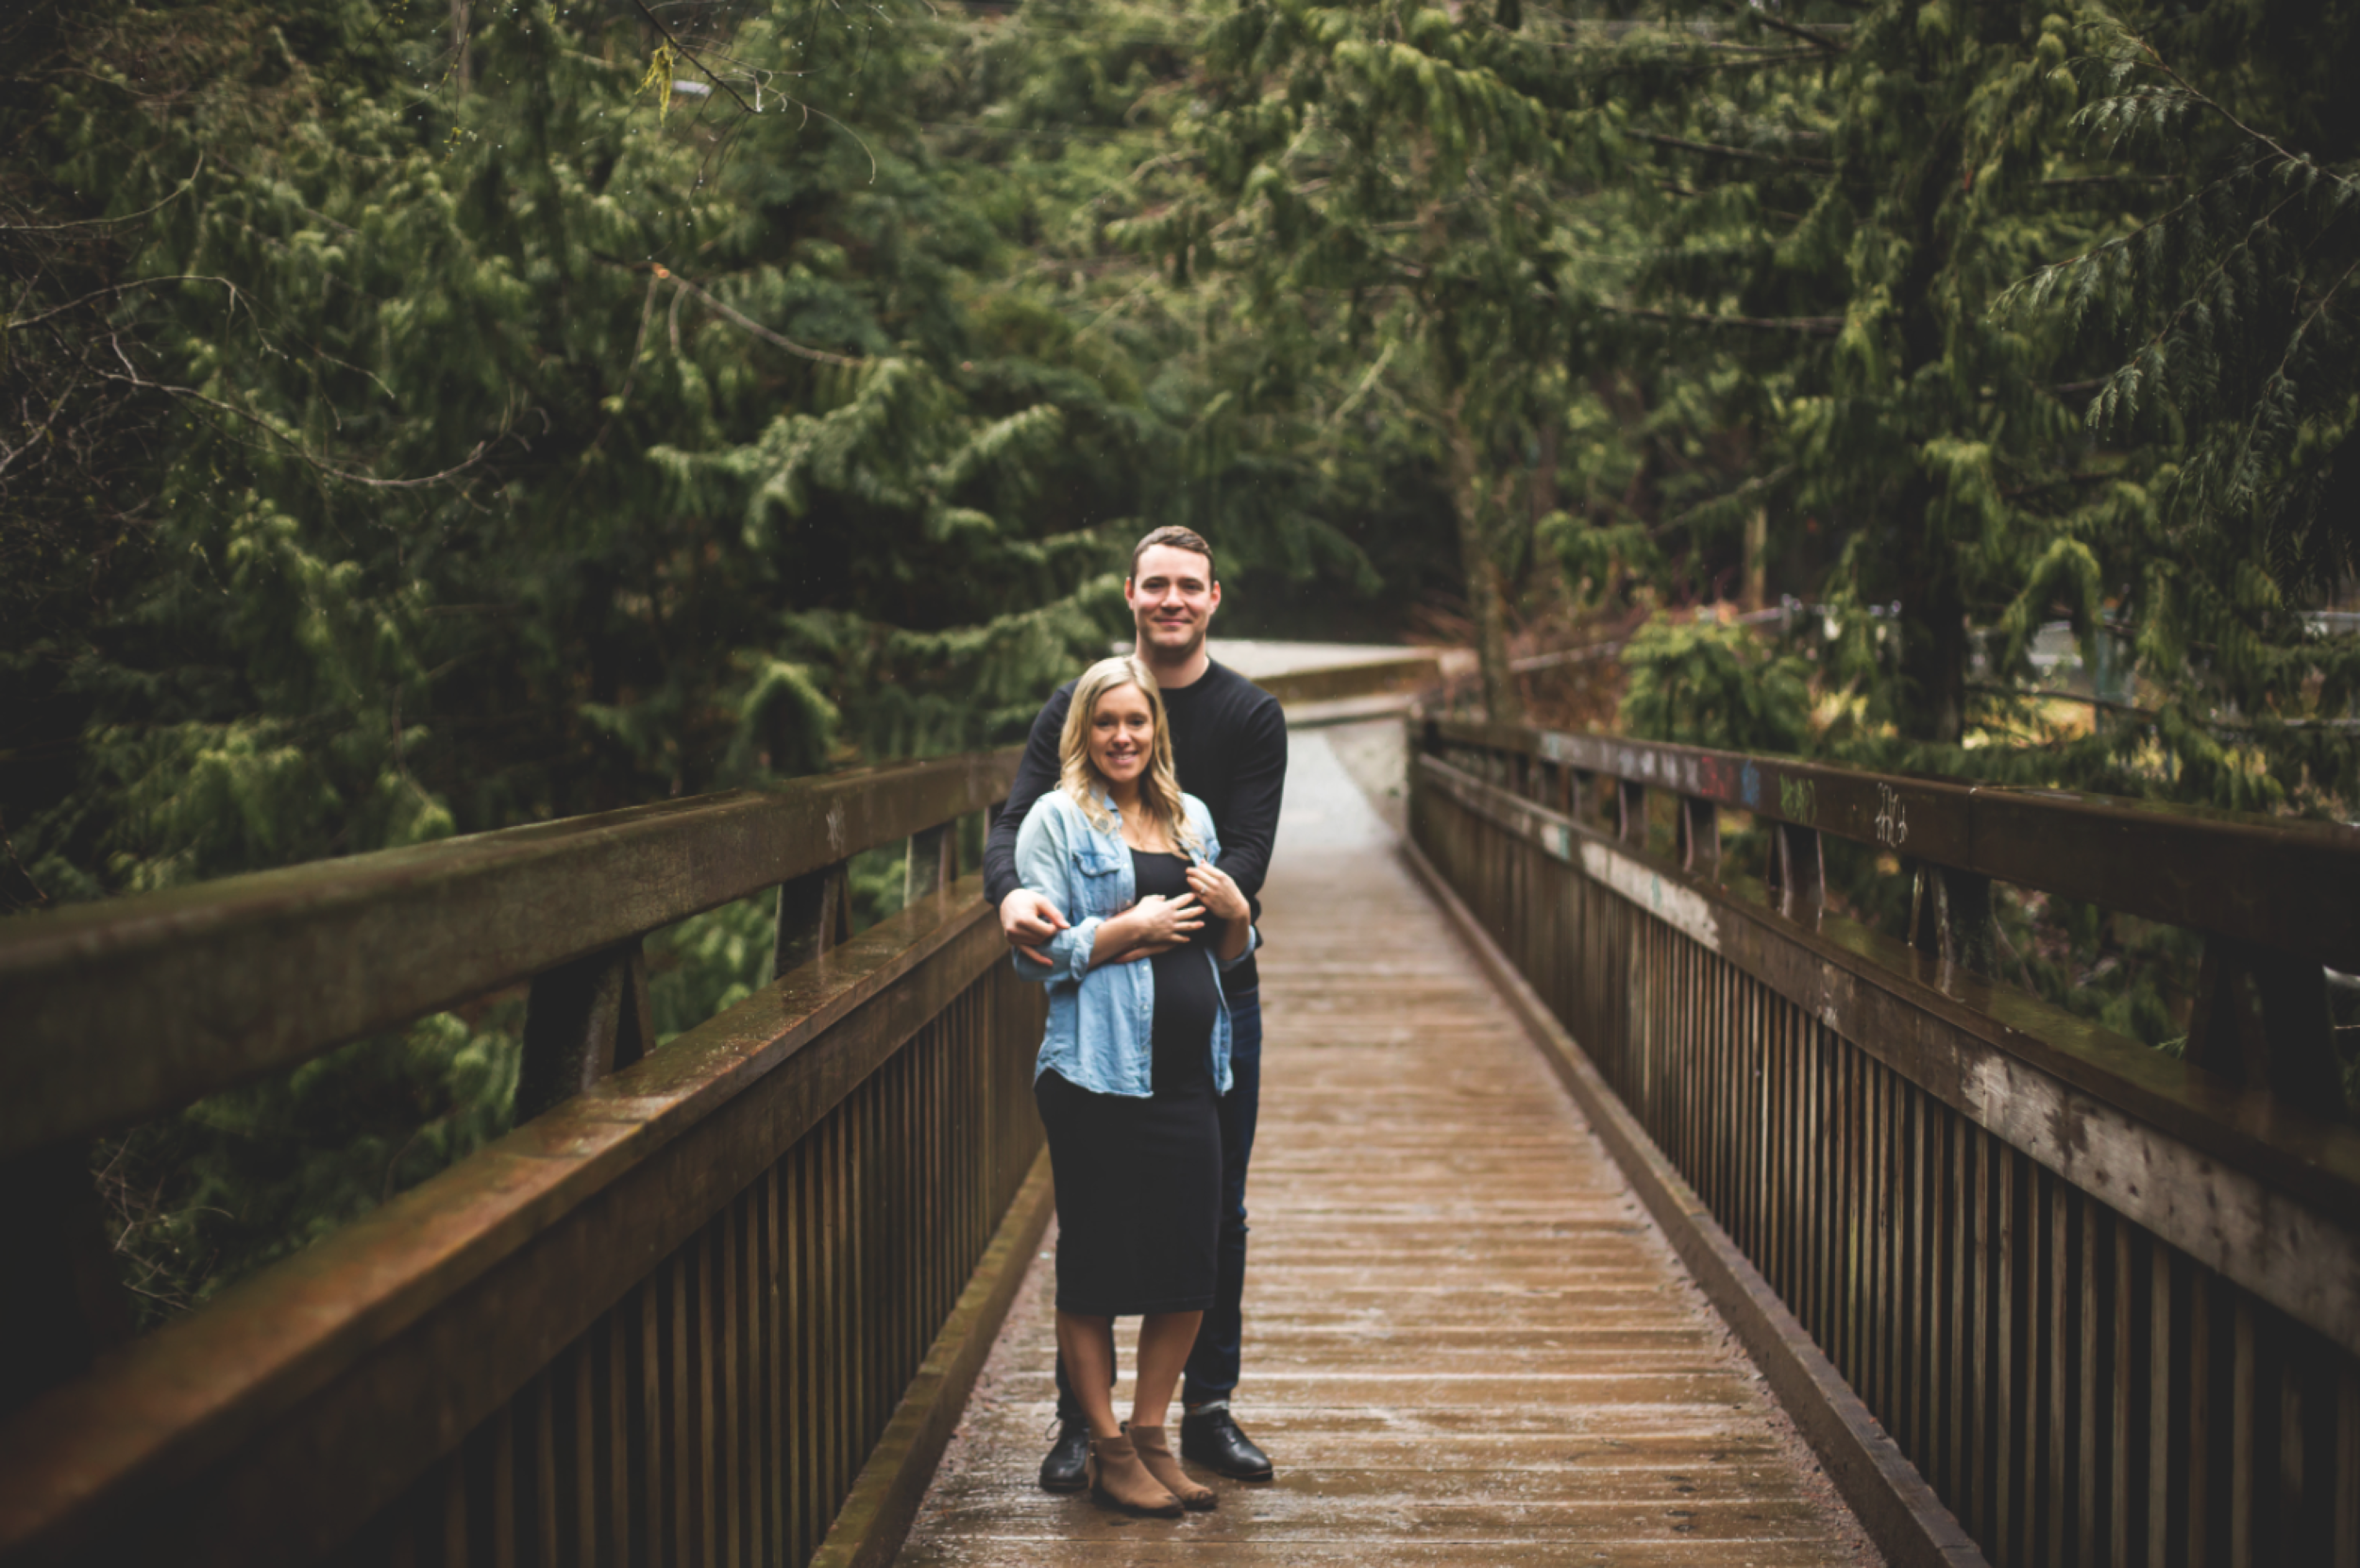 Maternity-Session-North-Vancouver-Lynn-Canyon-BC-Hamilton-Burlington-Oakville-Niagara-Toronto-Wedding-Portrait-Photographer-Expecting-Photography-Waterfront-HamOnt-Golden-Hour-Moments-by-Lauren-Photo-Image-11.png